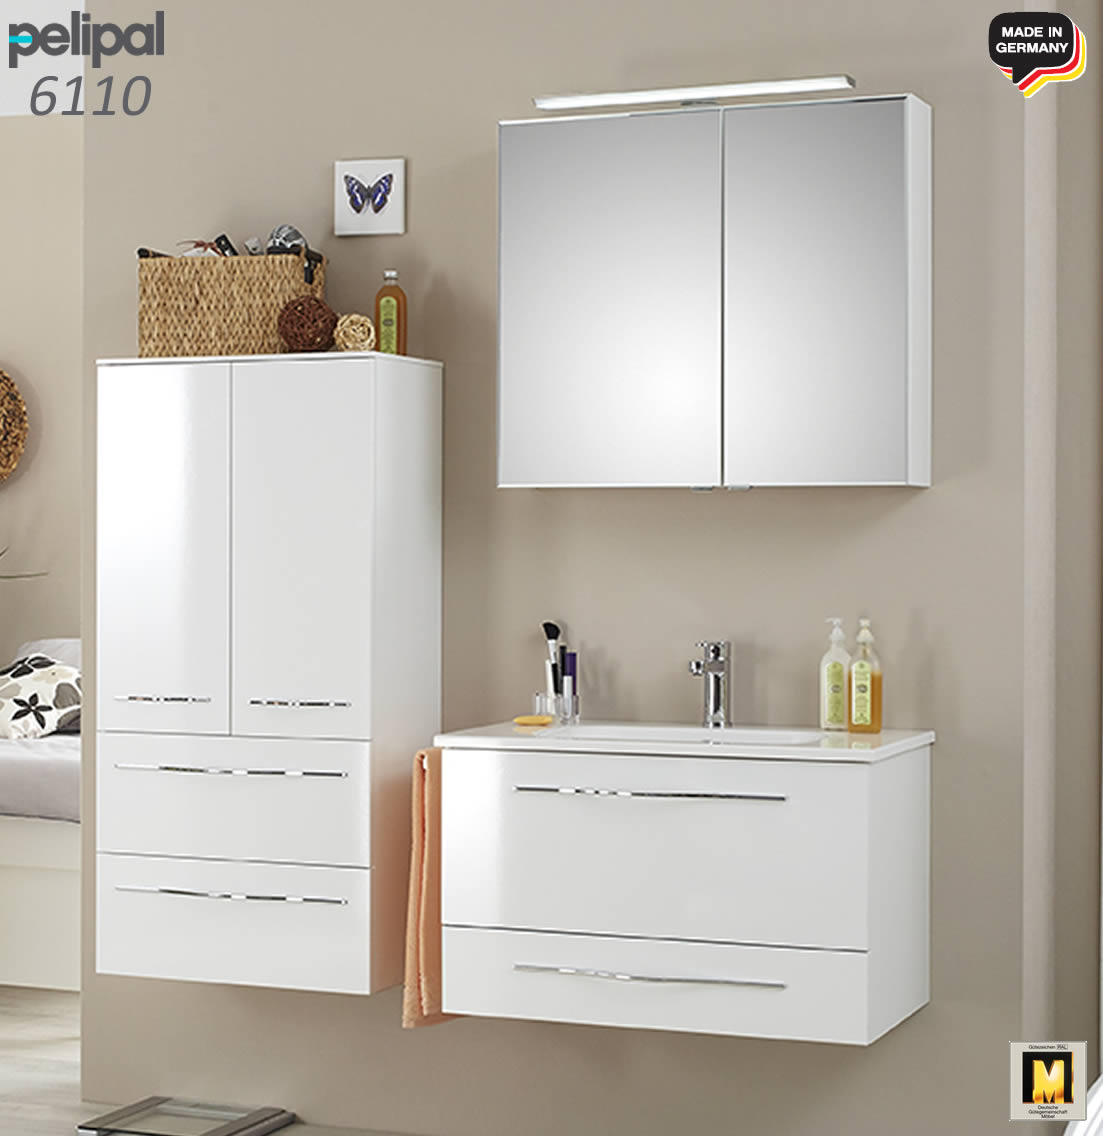 pelipal solitaire 6110 badm bel set 81 cm v2 2 impuls home. Black Bedroom Furniture Sets. Home Design Ideas